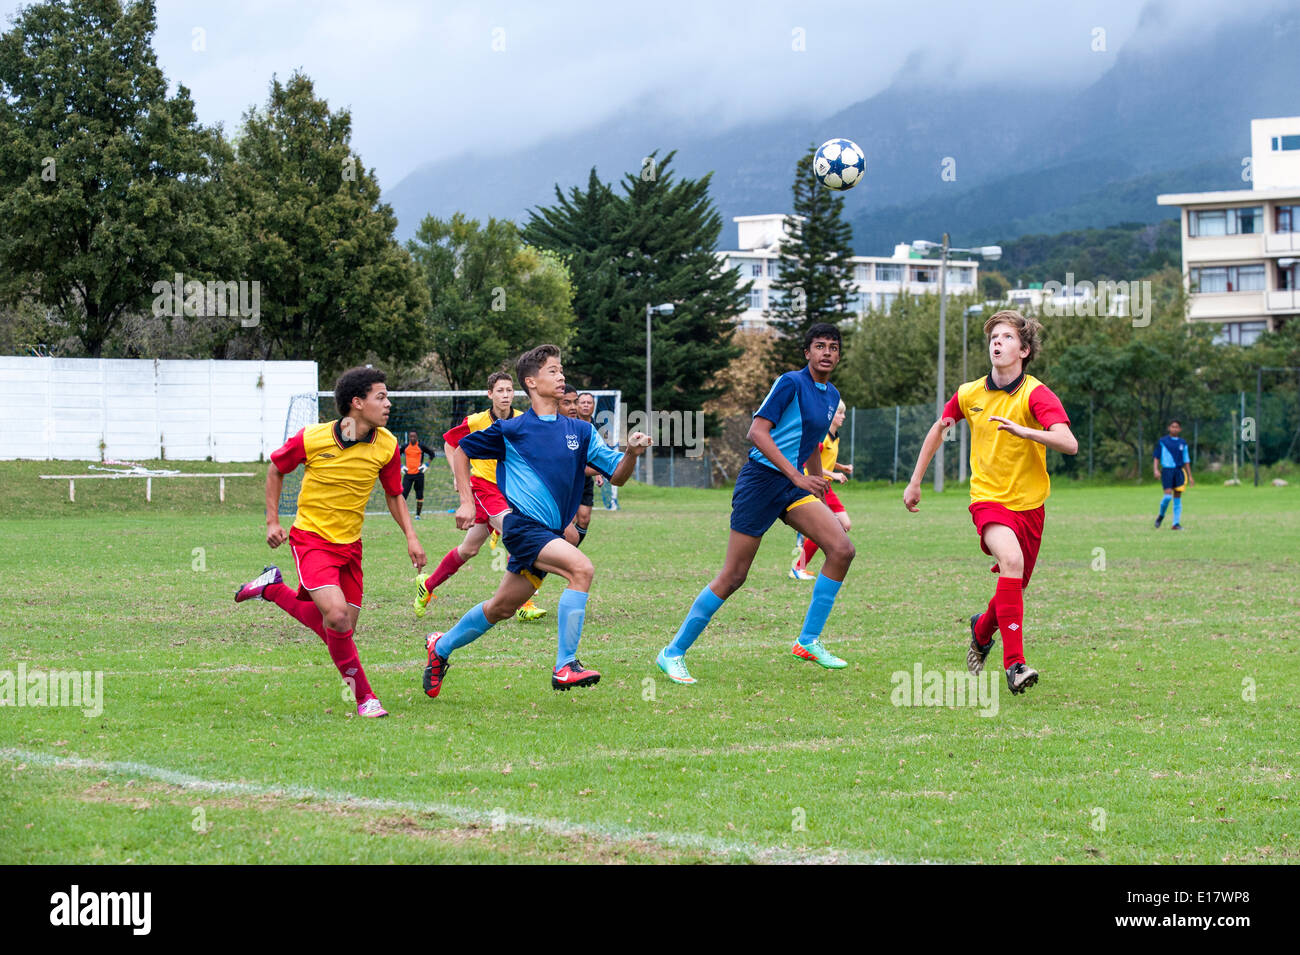 Junior football players heading the ball, Cape Town, South Africa - Stock Image